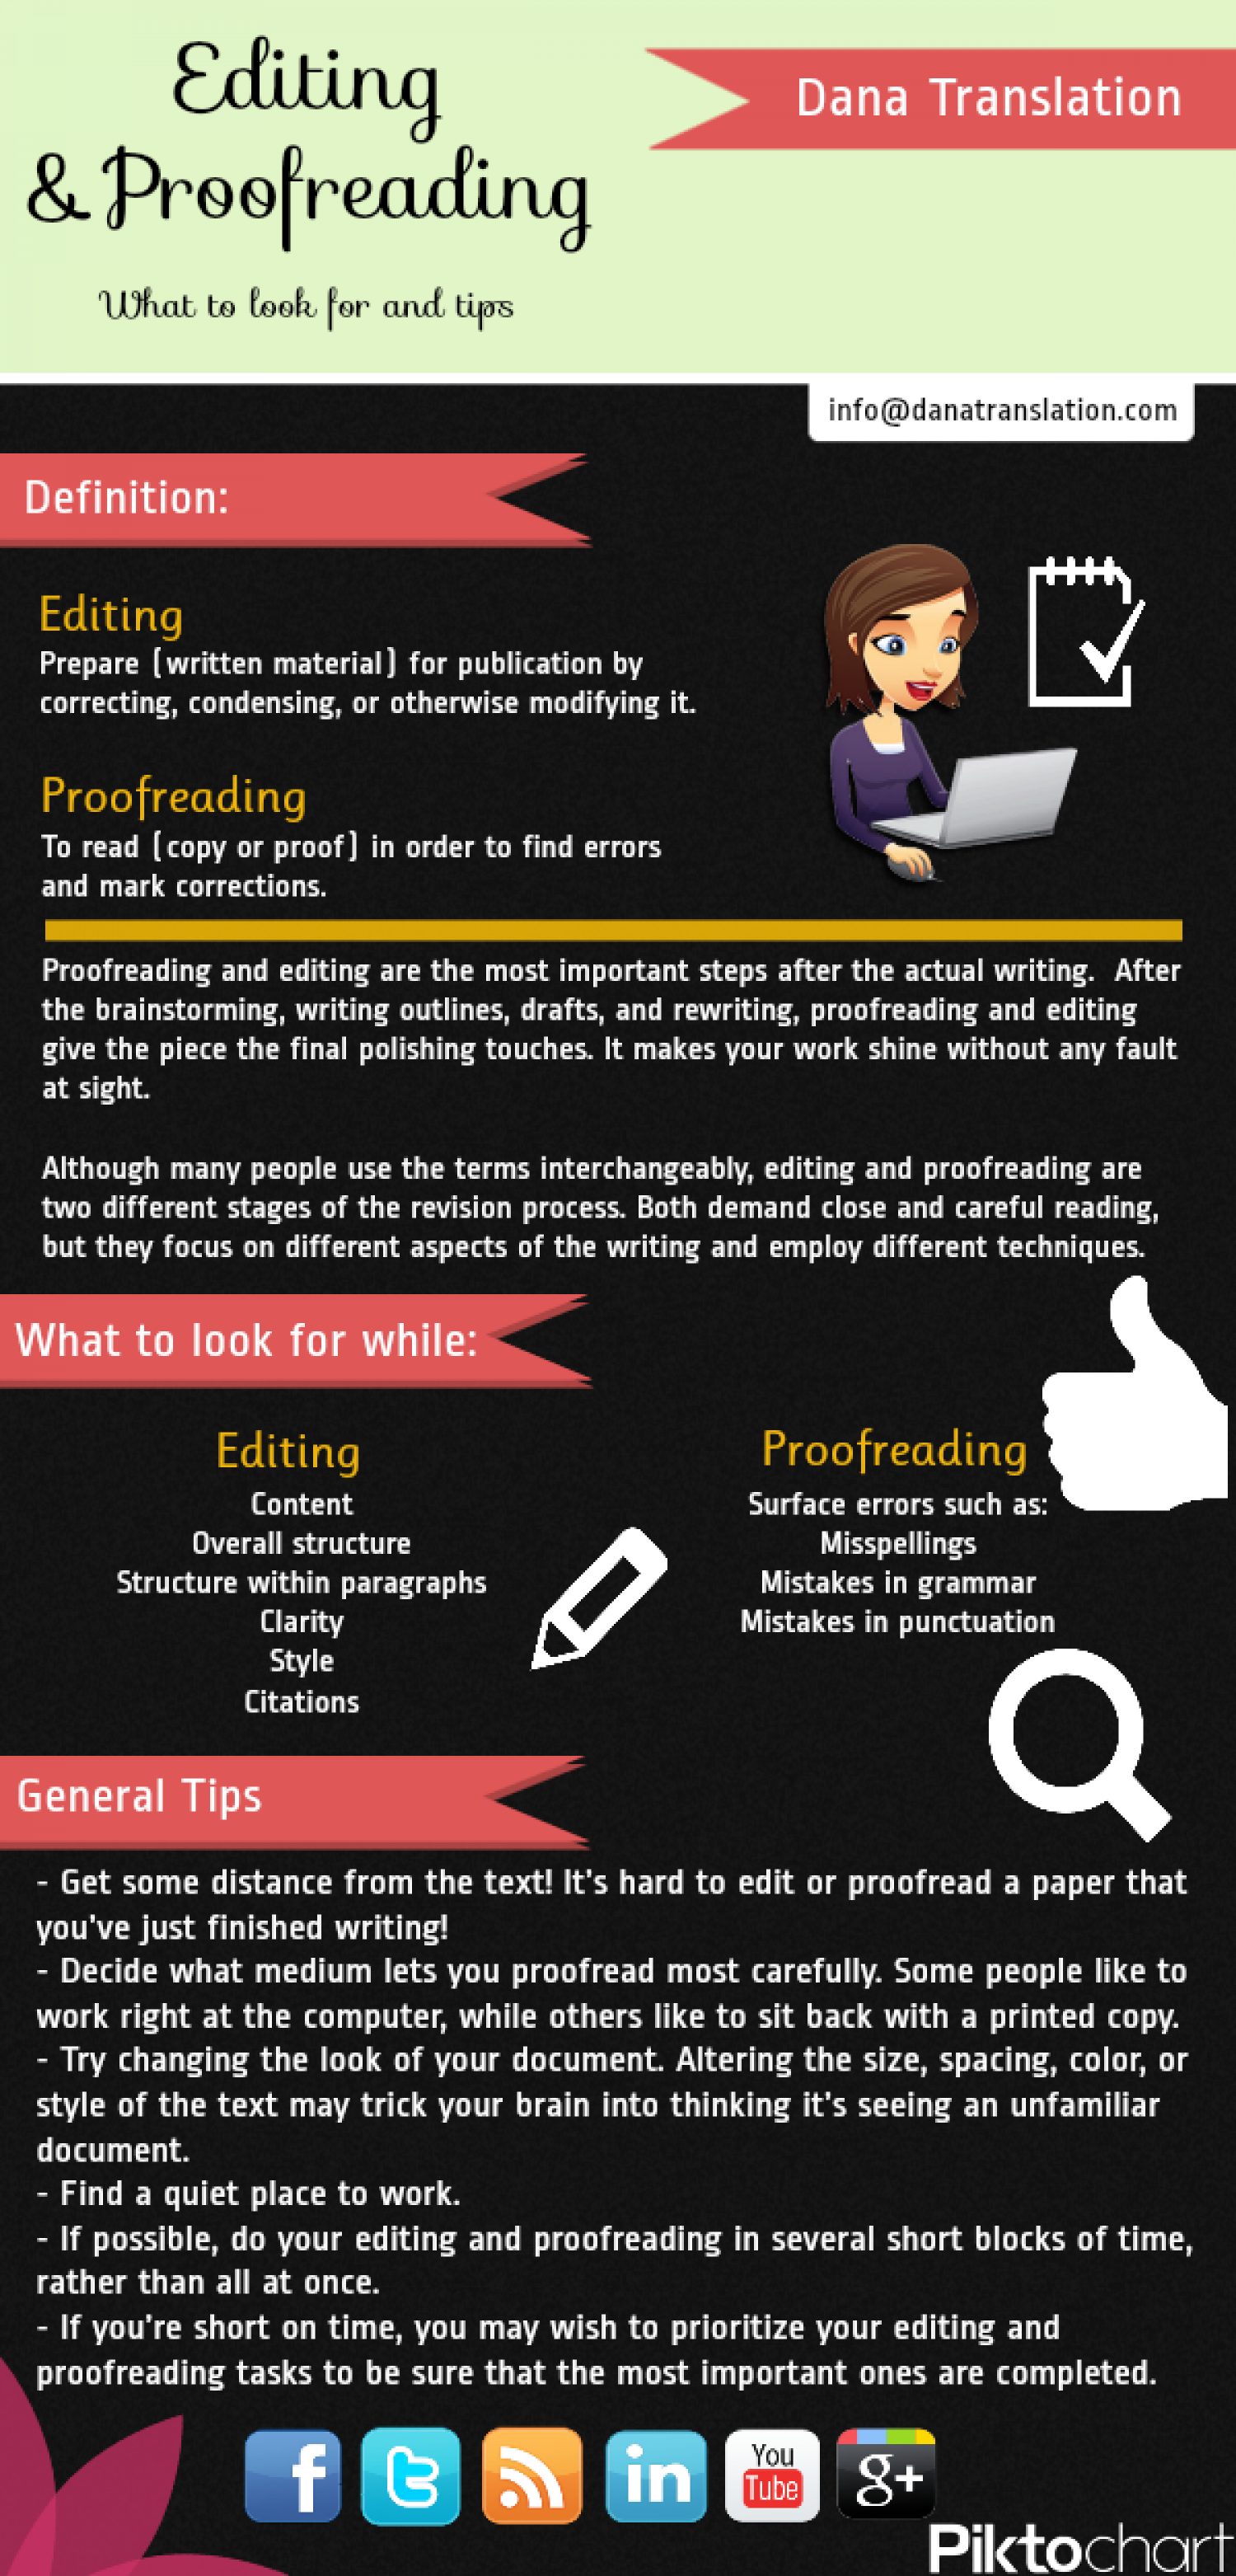 Editing & Proofreading Infographic